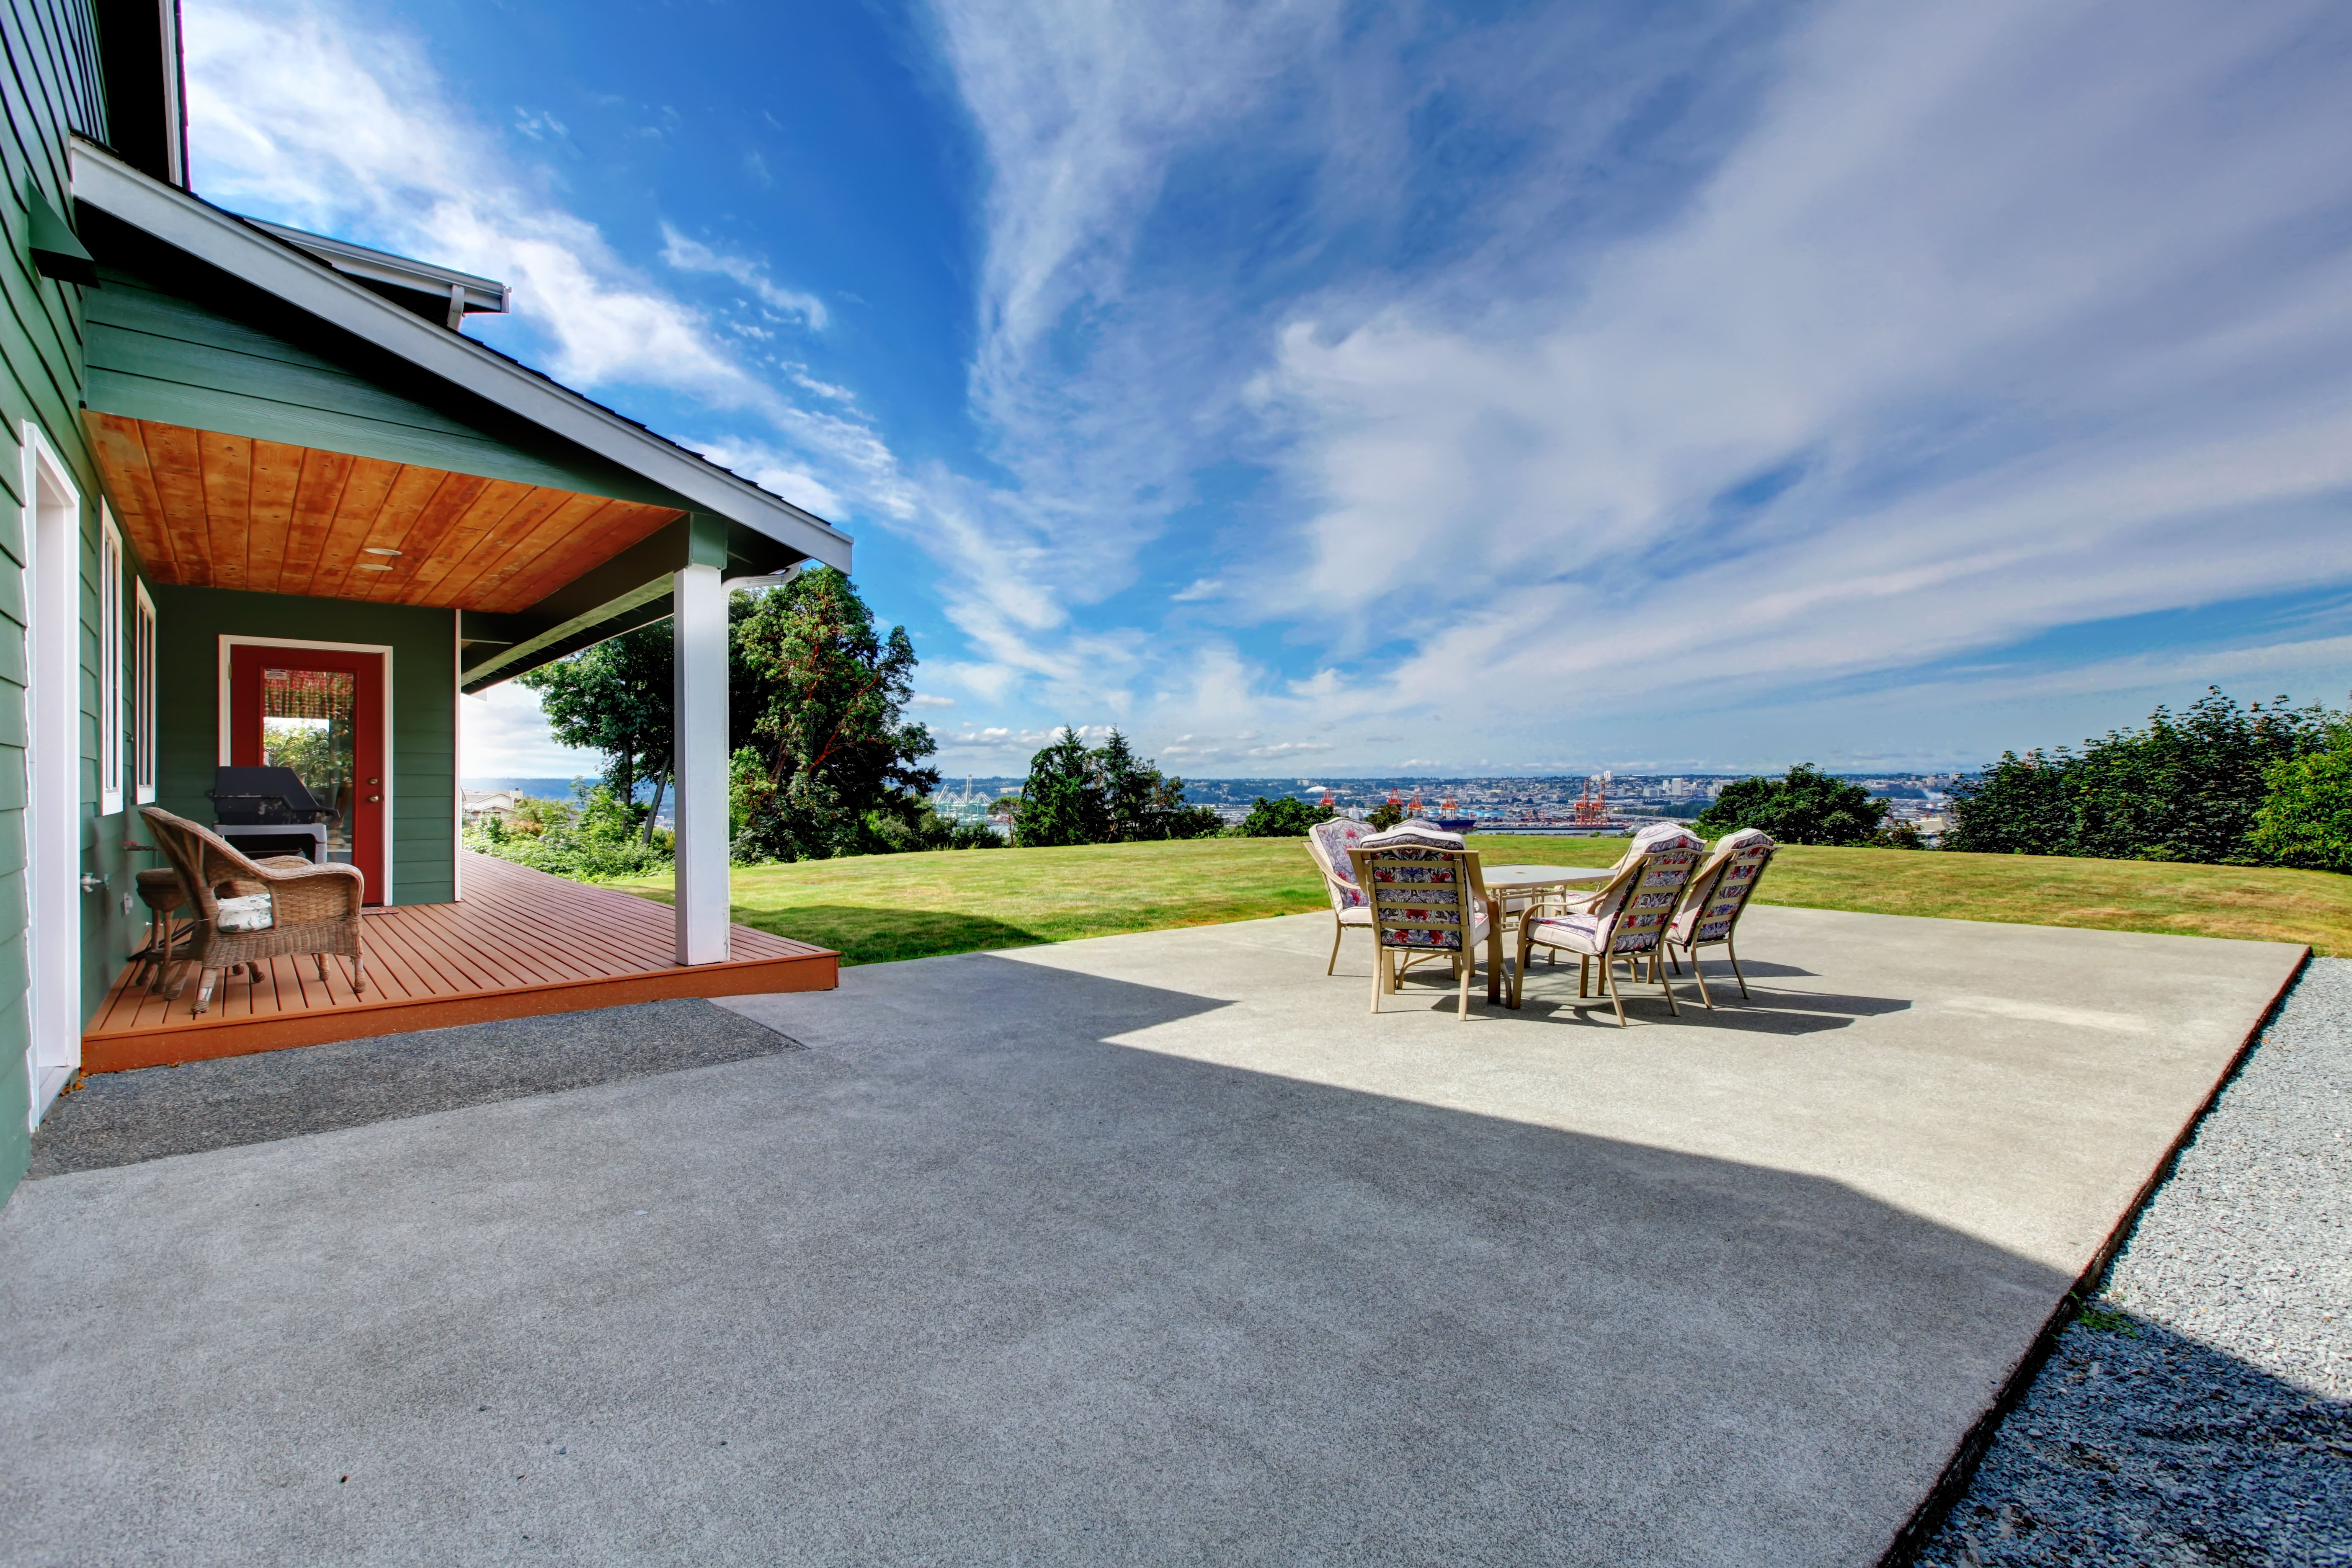 3 Reasons to Choose Concrete as Your Patio Surface | Port ... on Patio Designs  id=31919